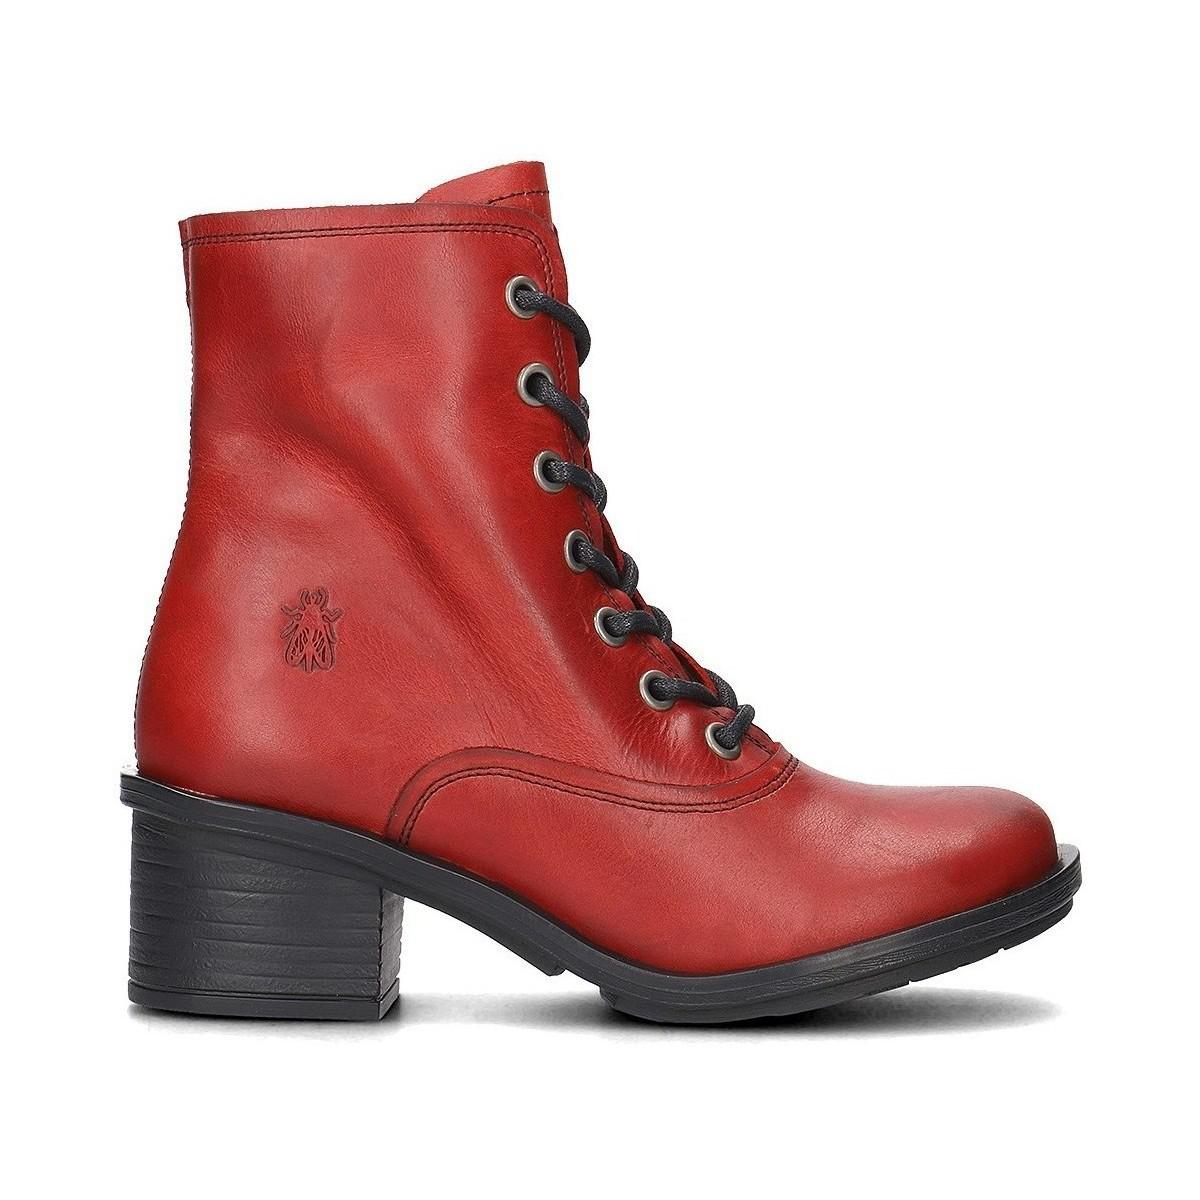 Fly London Carm Women's Low Ankle Boots In Red